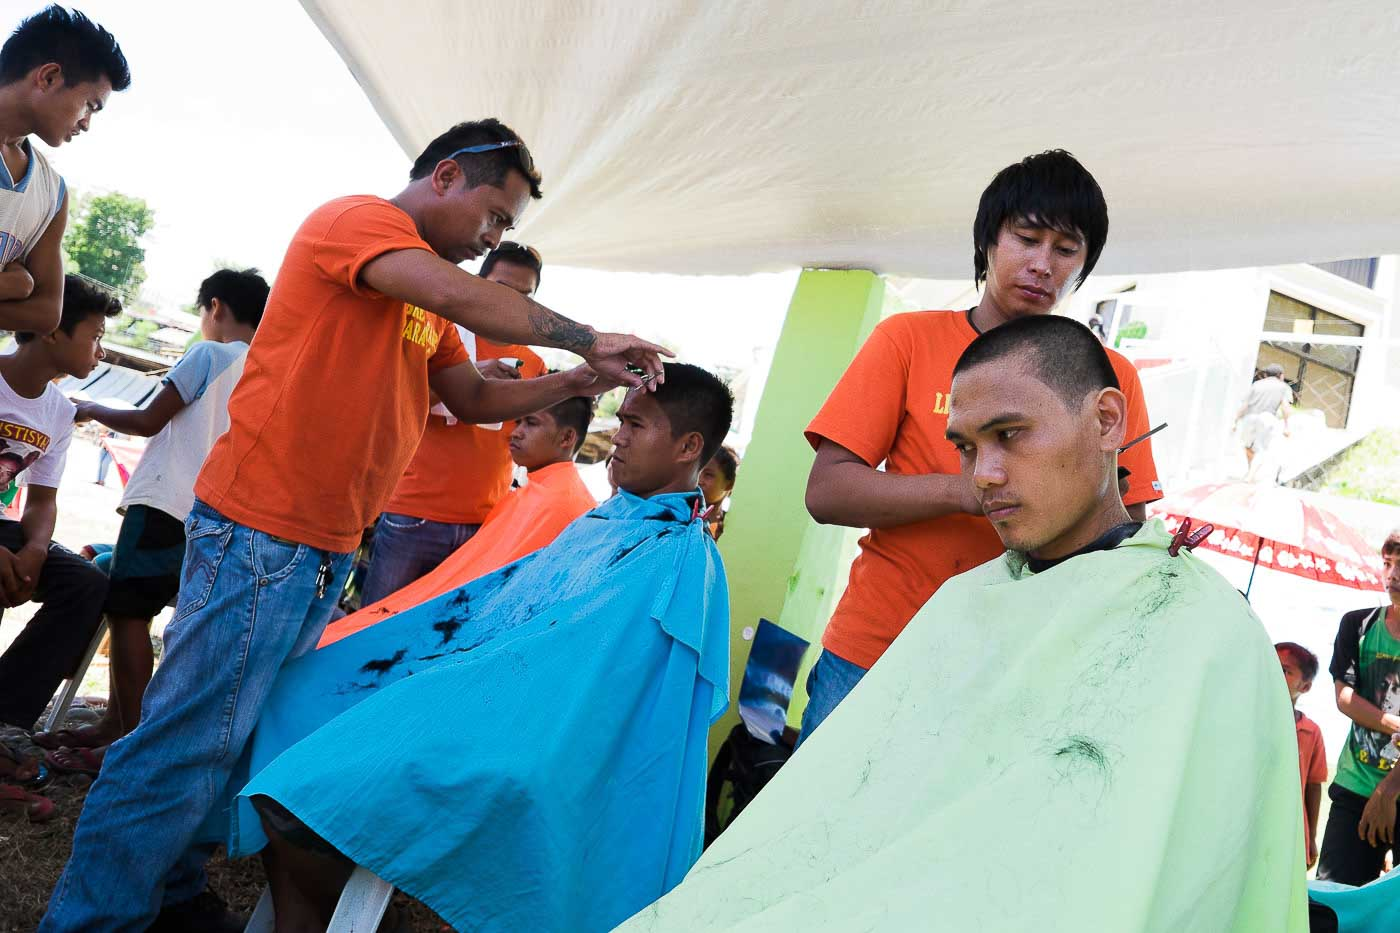 THE MEN. Getting haircuts at the Tandag City Sports Complex where almost 4,000 Lumads have been staying since September 1.